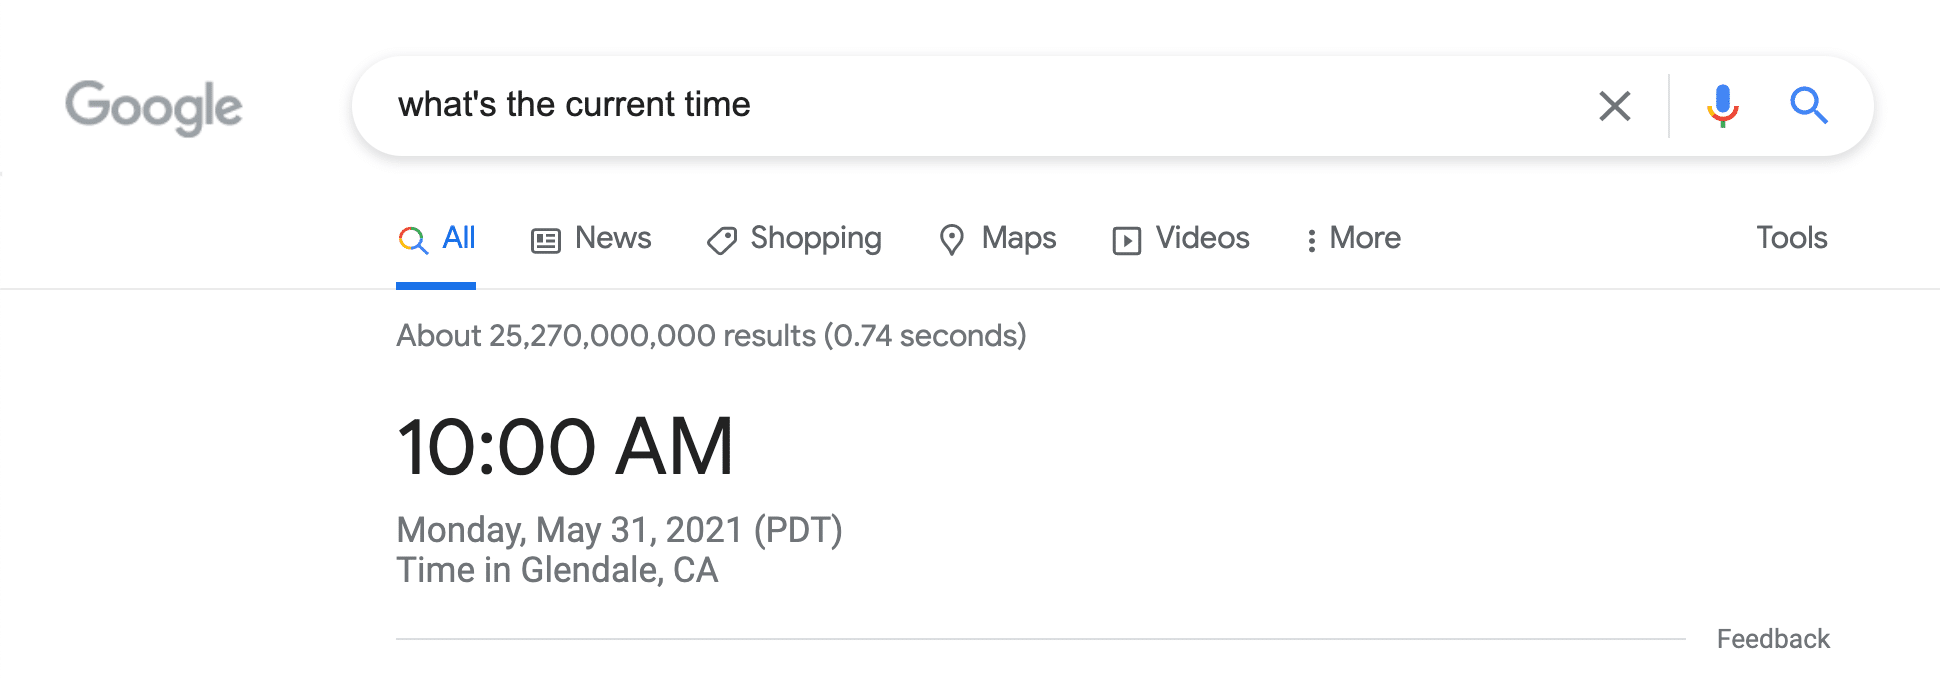 current time google knowledge card